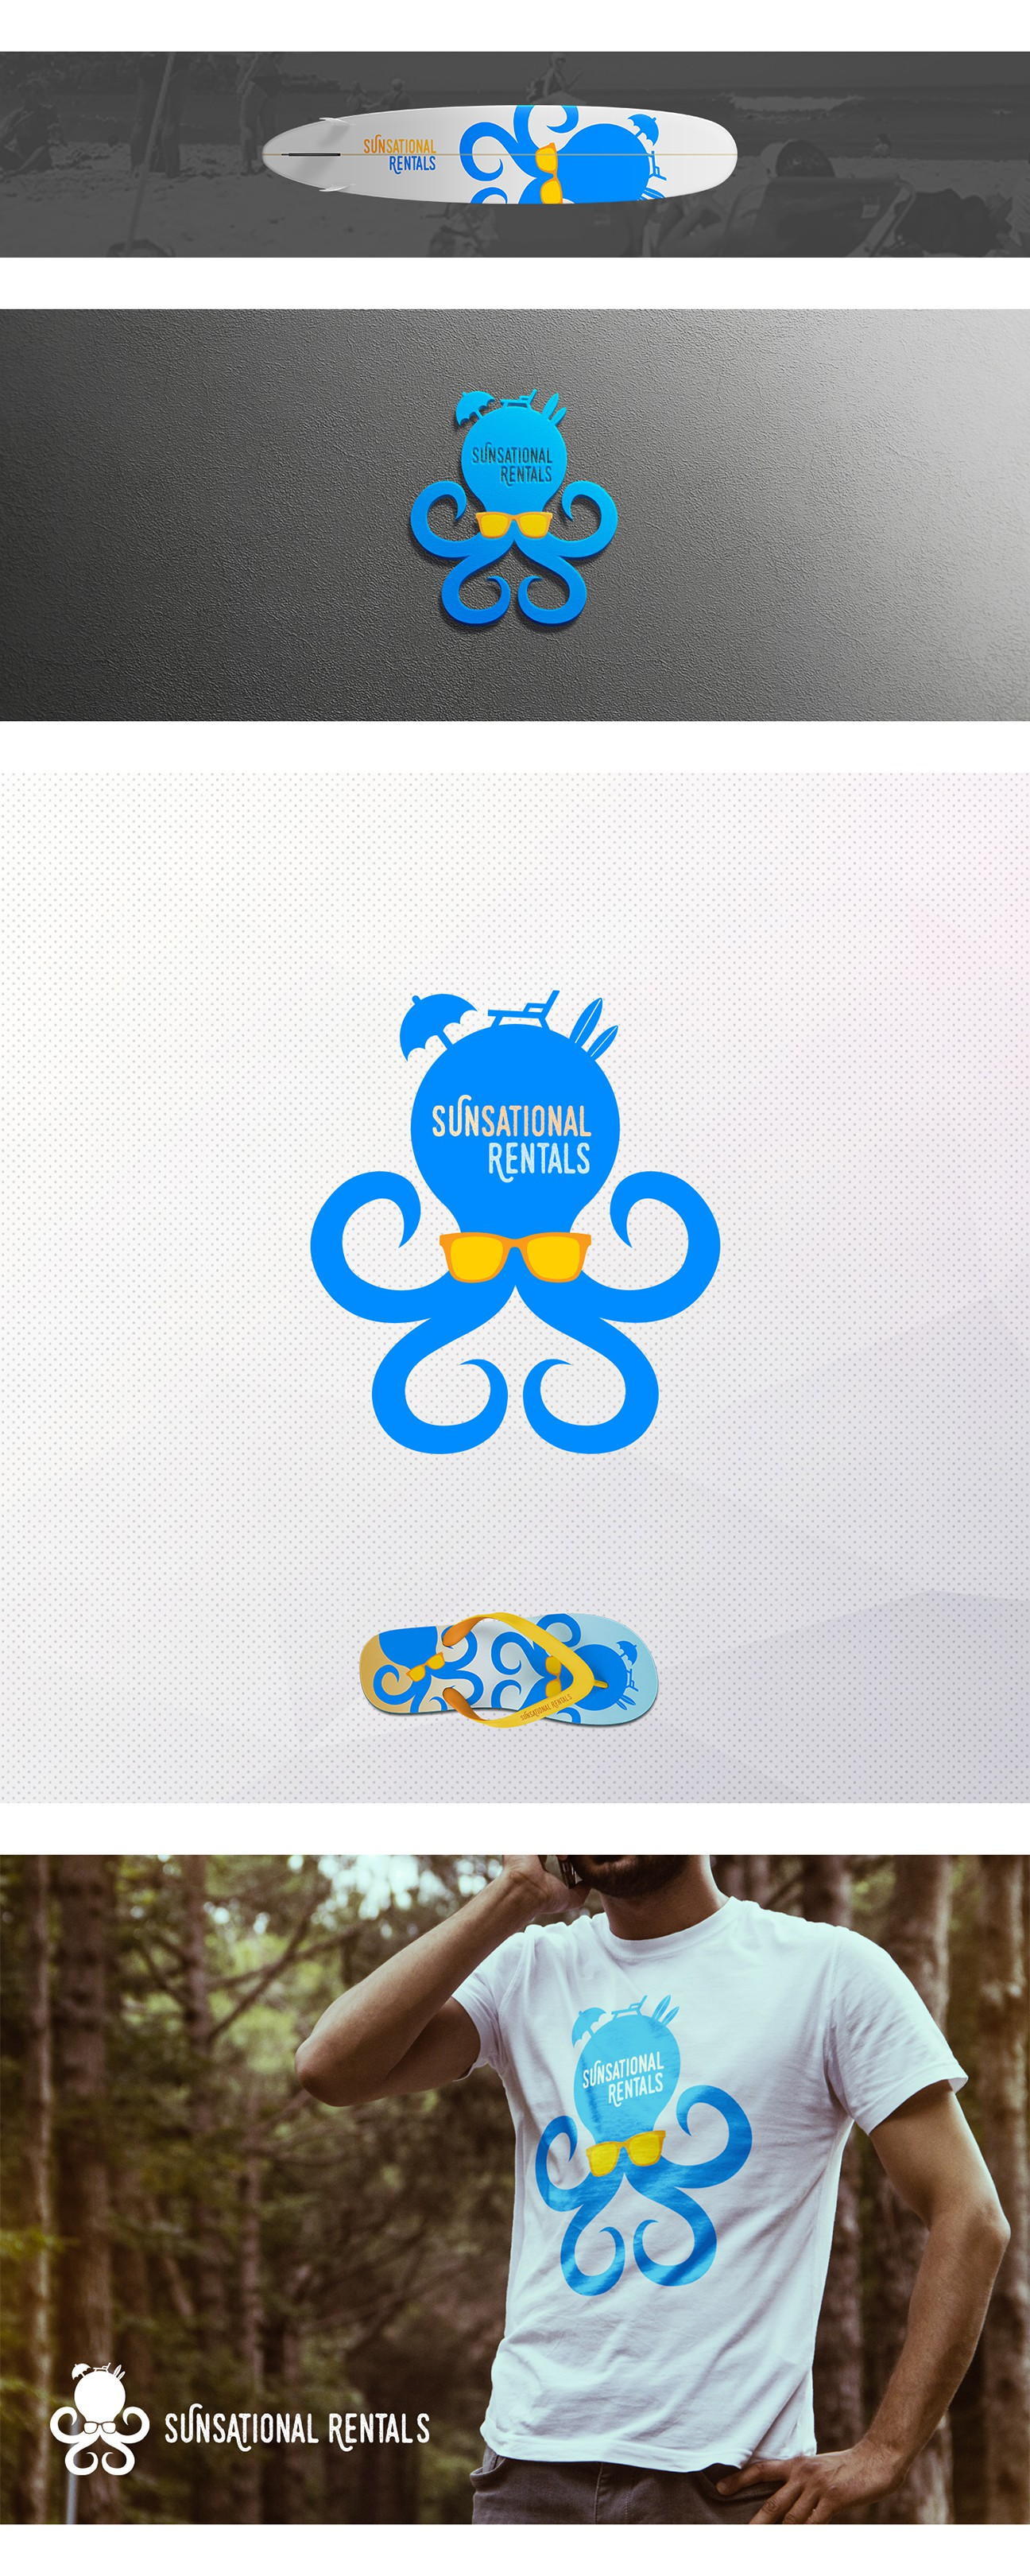 Design a color popping octopus holding a beach umbrella and a boogieboard over my company name